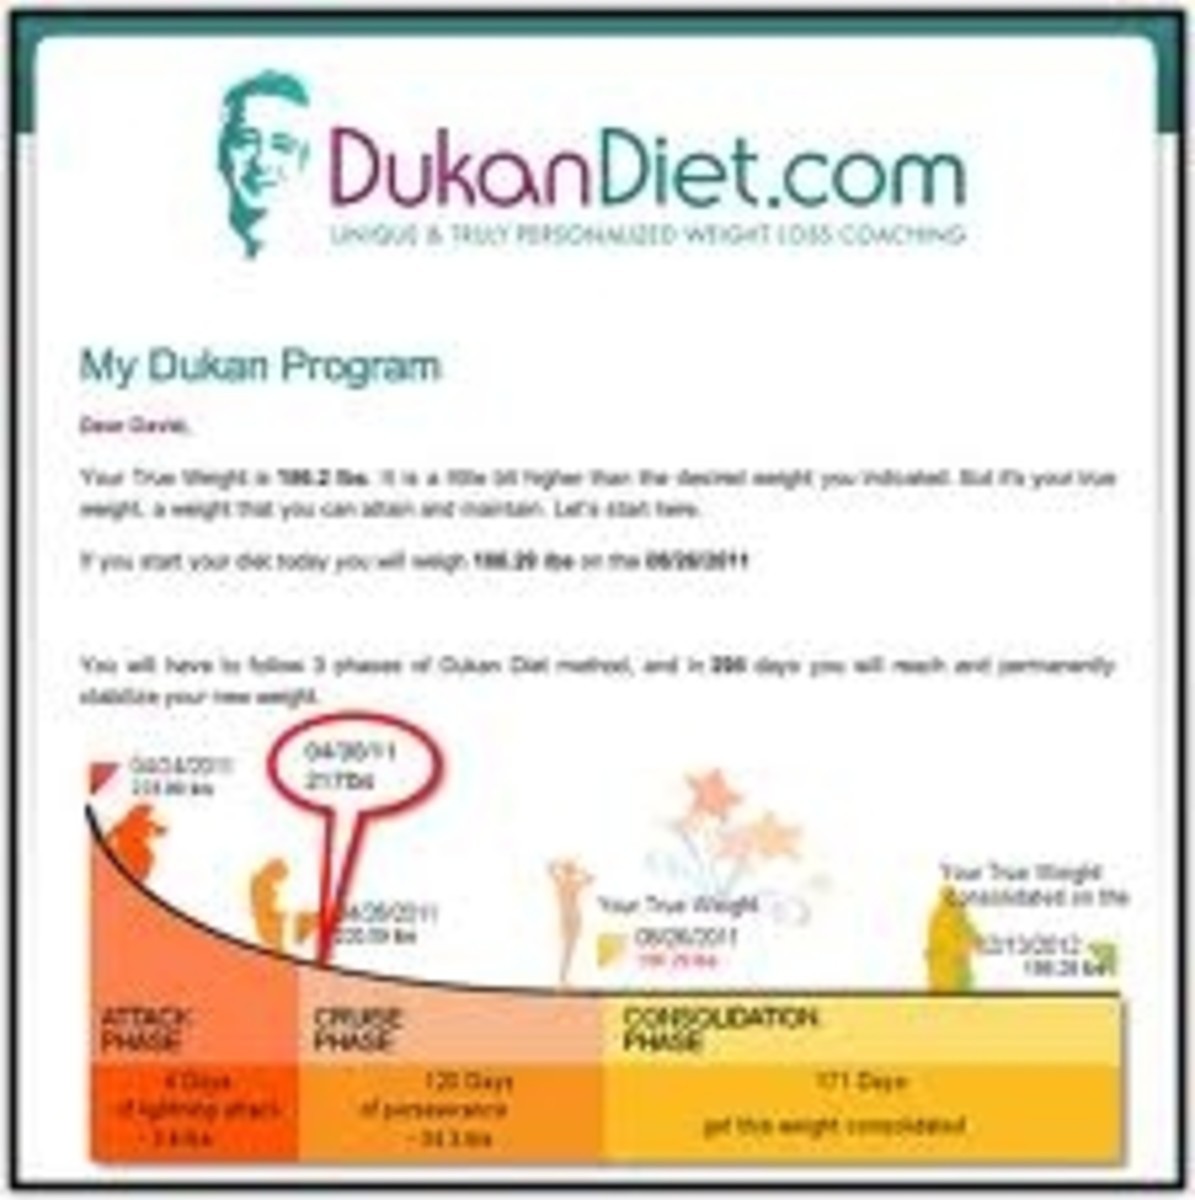 Dukan Diet True weight